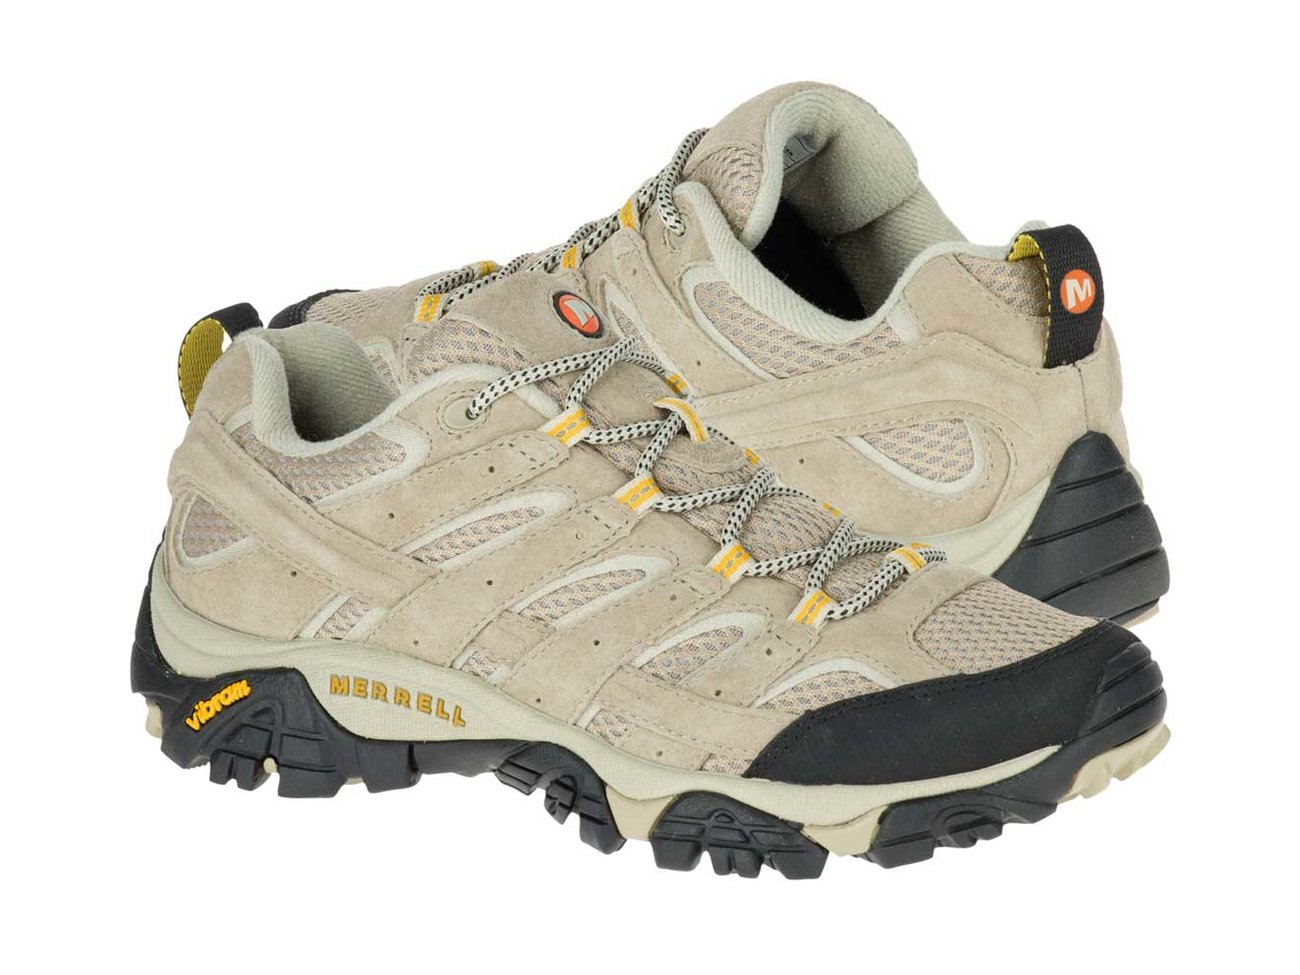 Cheap Trail Shoes Philippines